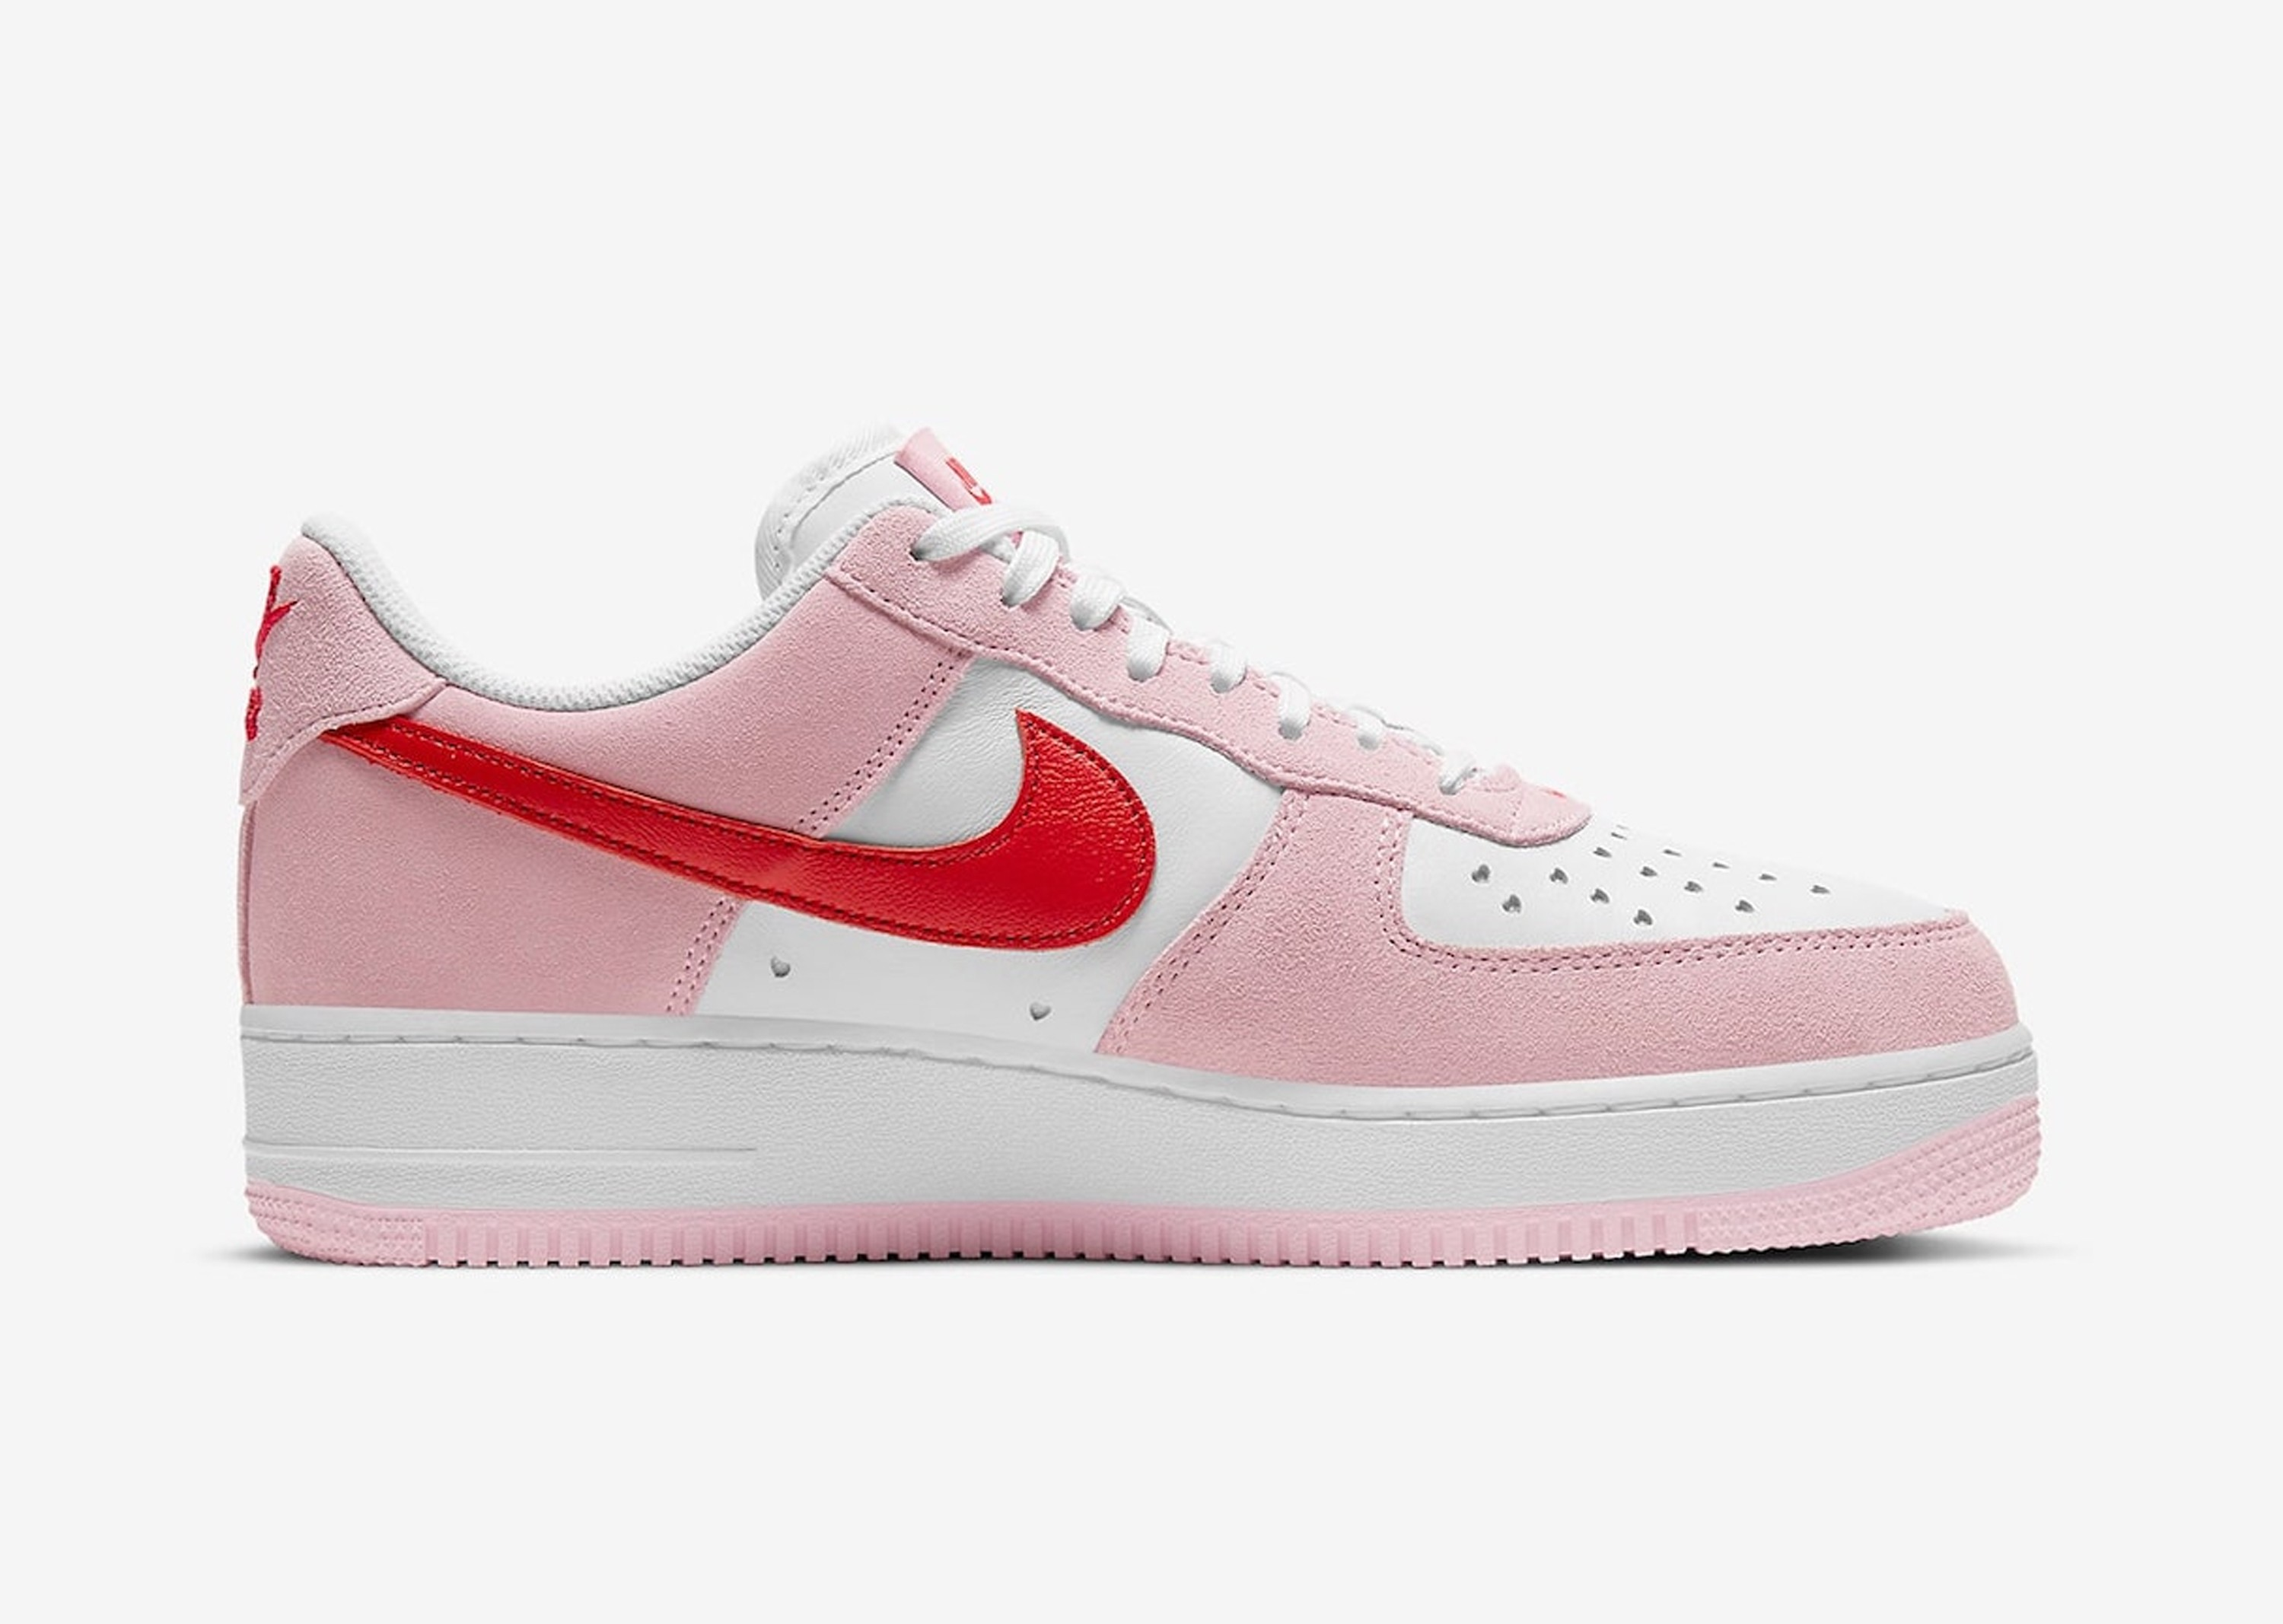 af1_valentines_day_blog_0001_Layer 3